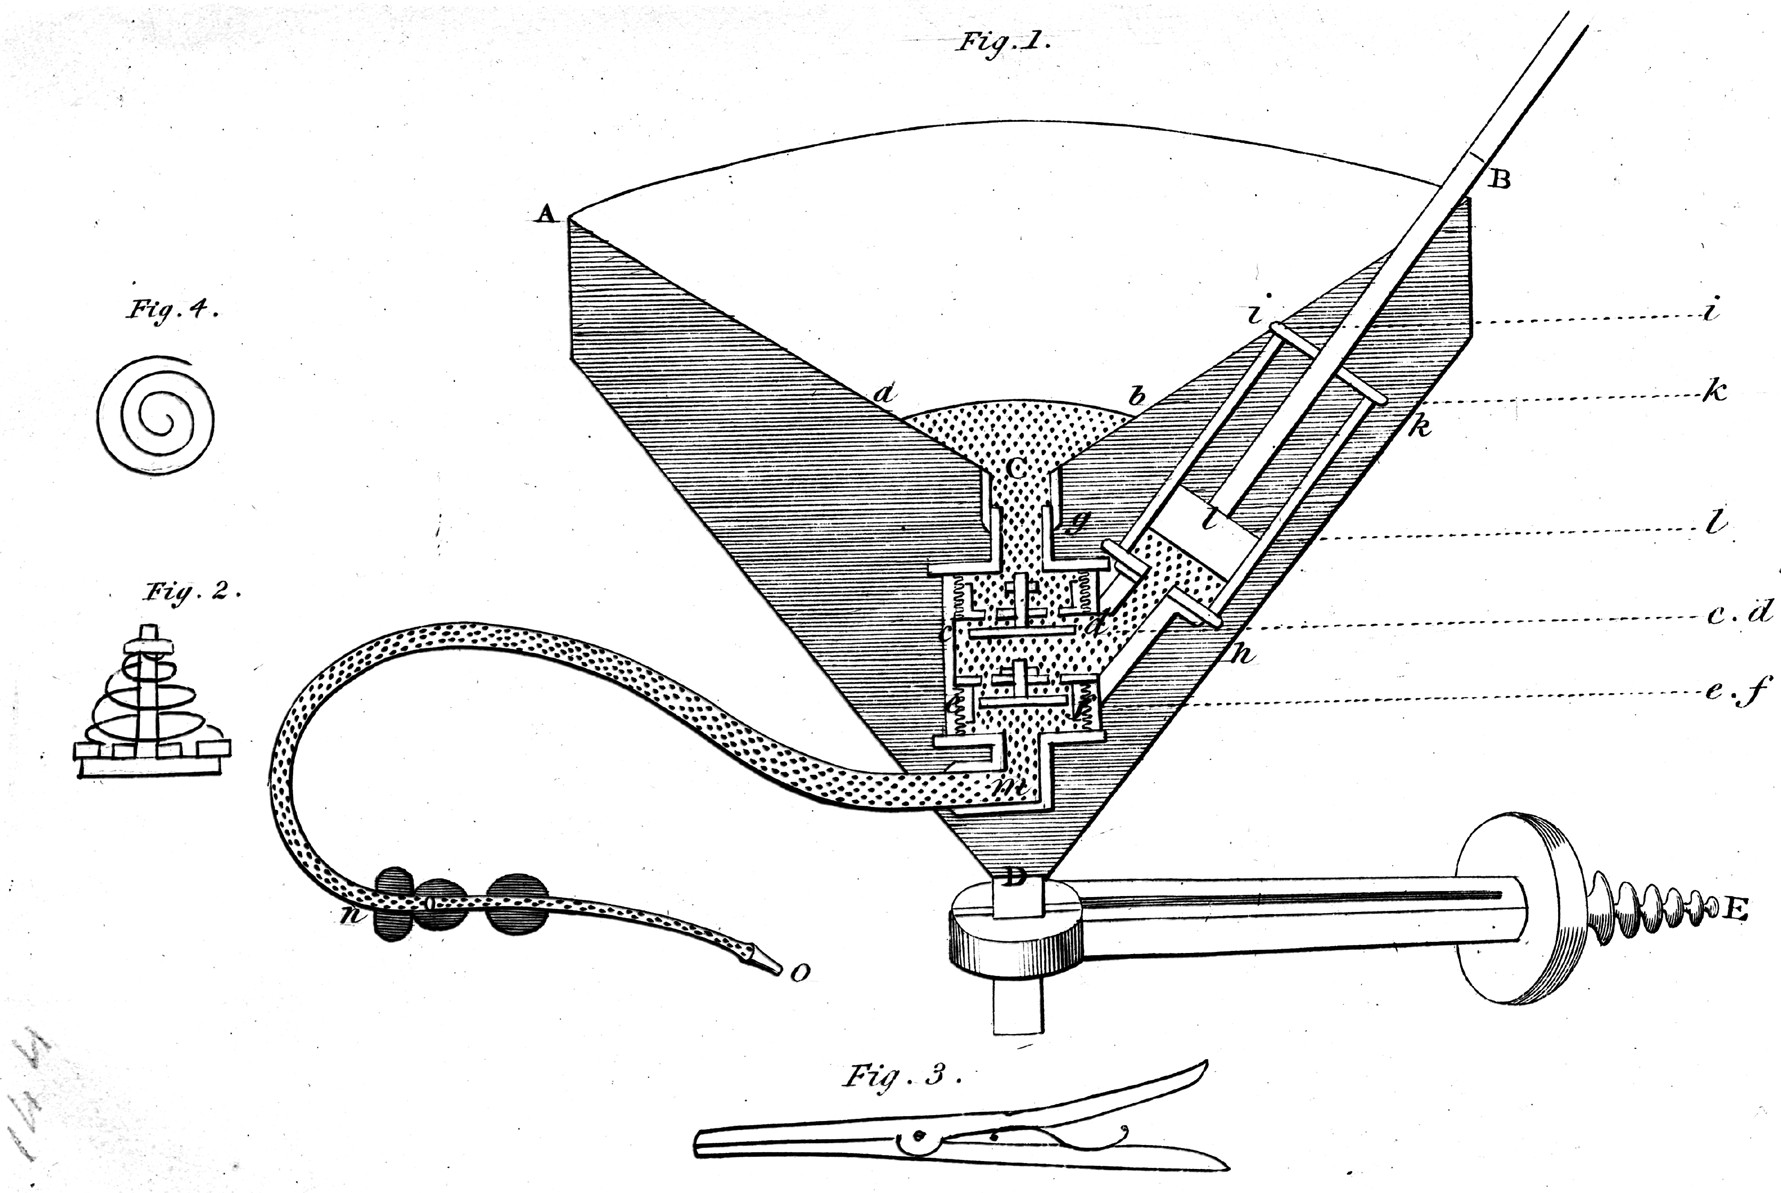 File:Section of impellor injecting syringe. Wellcome